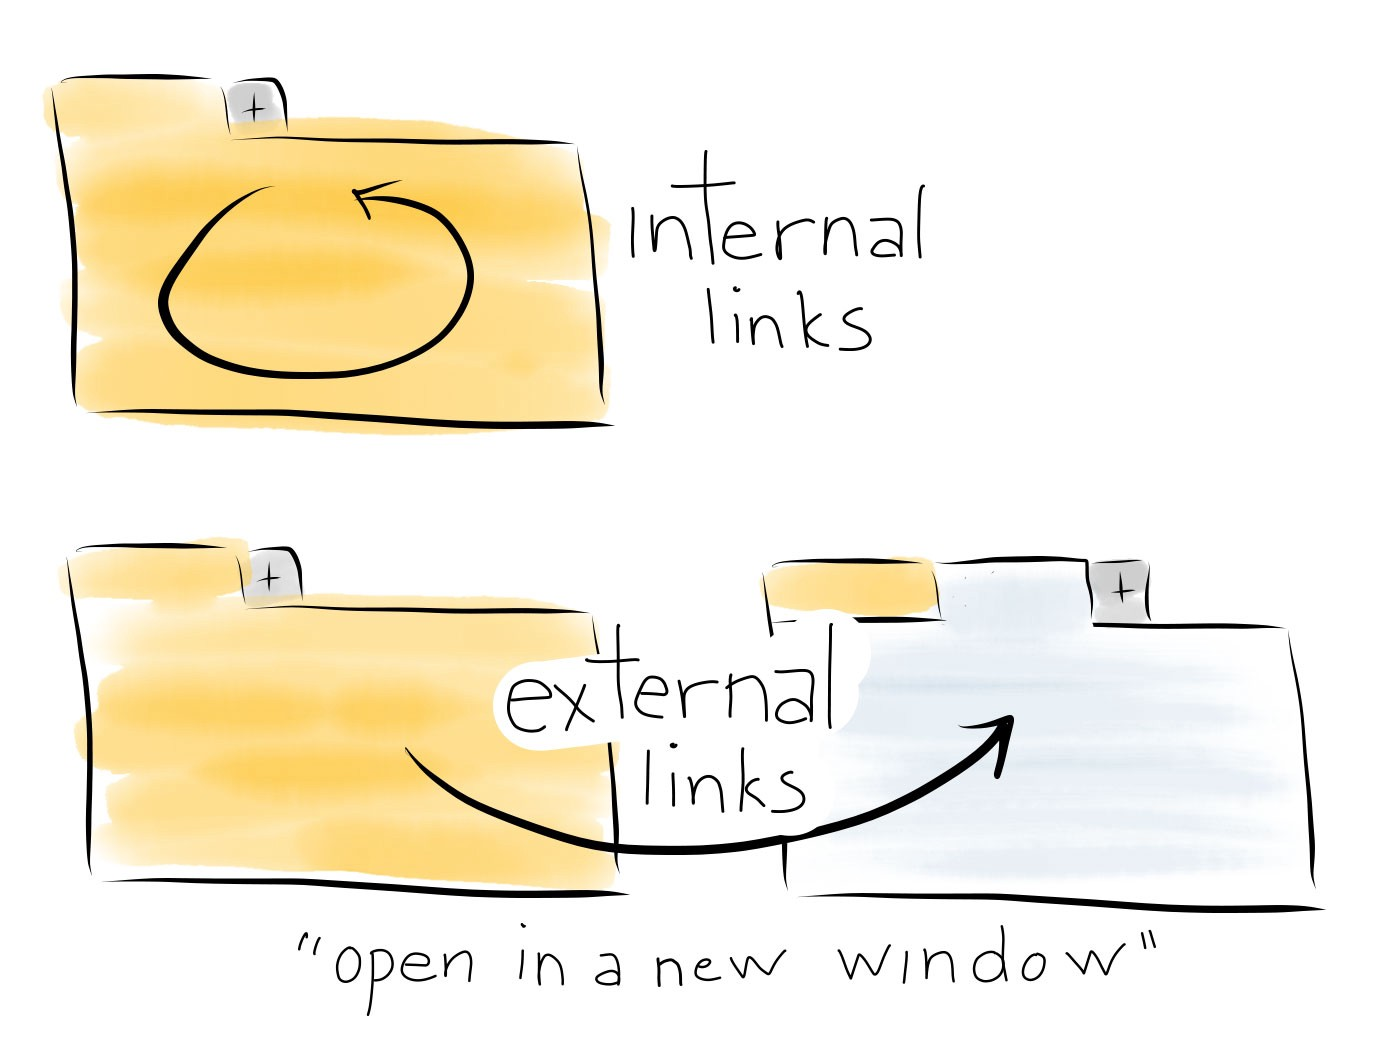 Hand-drawn illustration of the difference between internal and external links